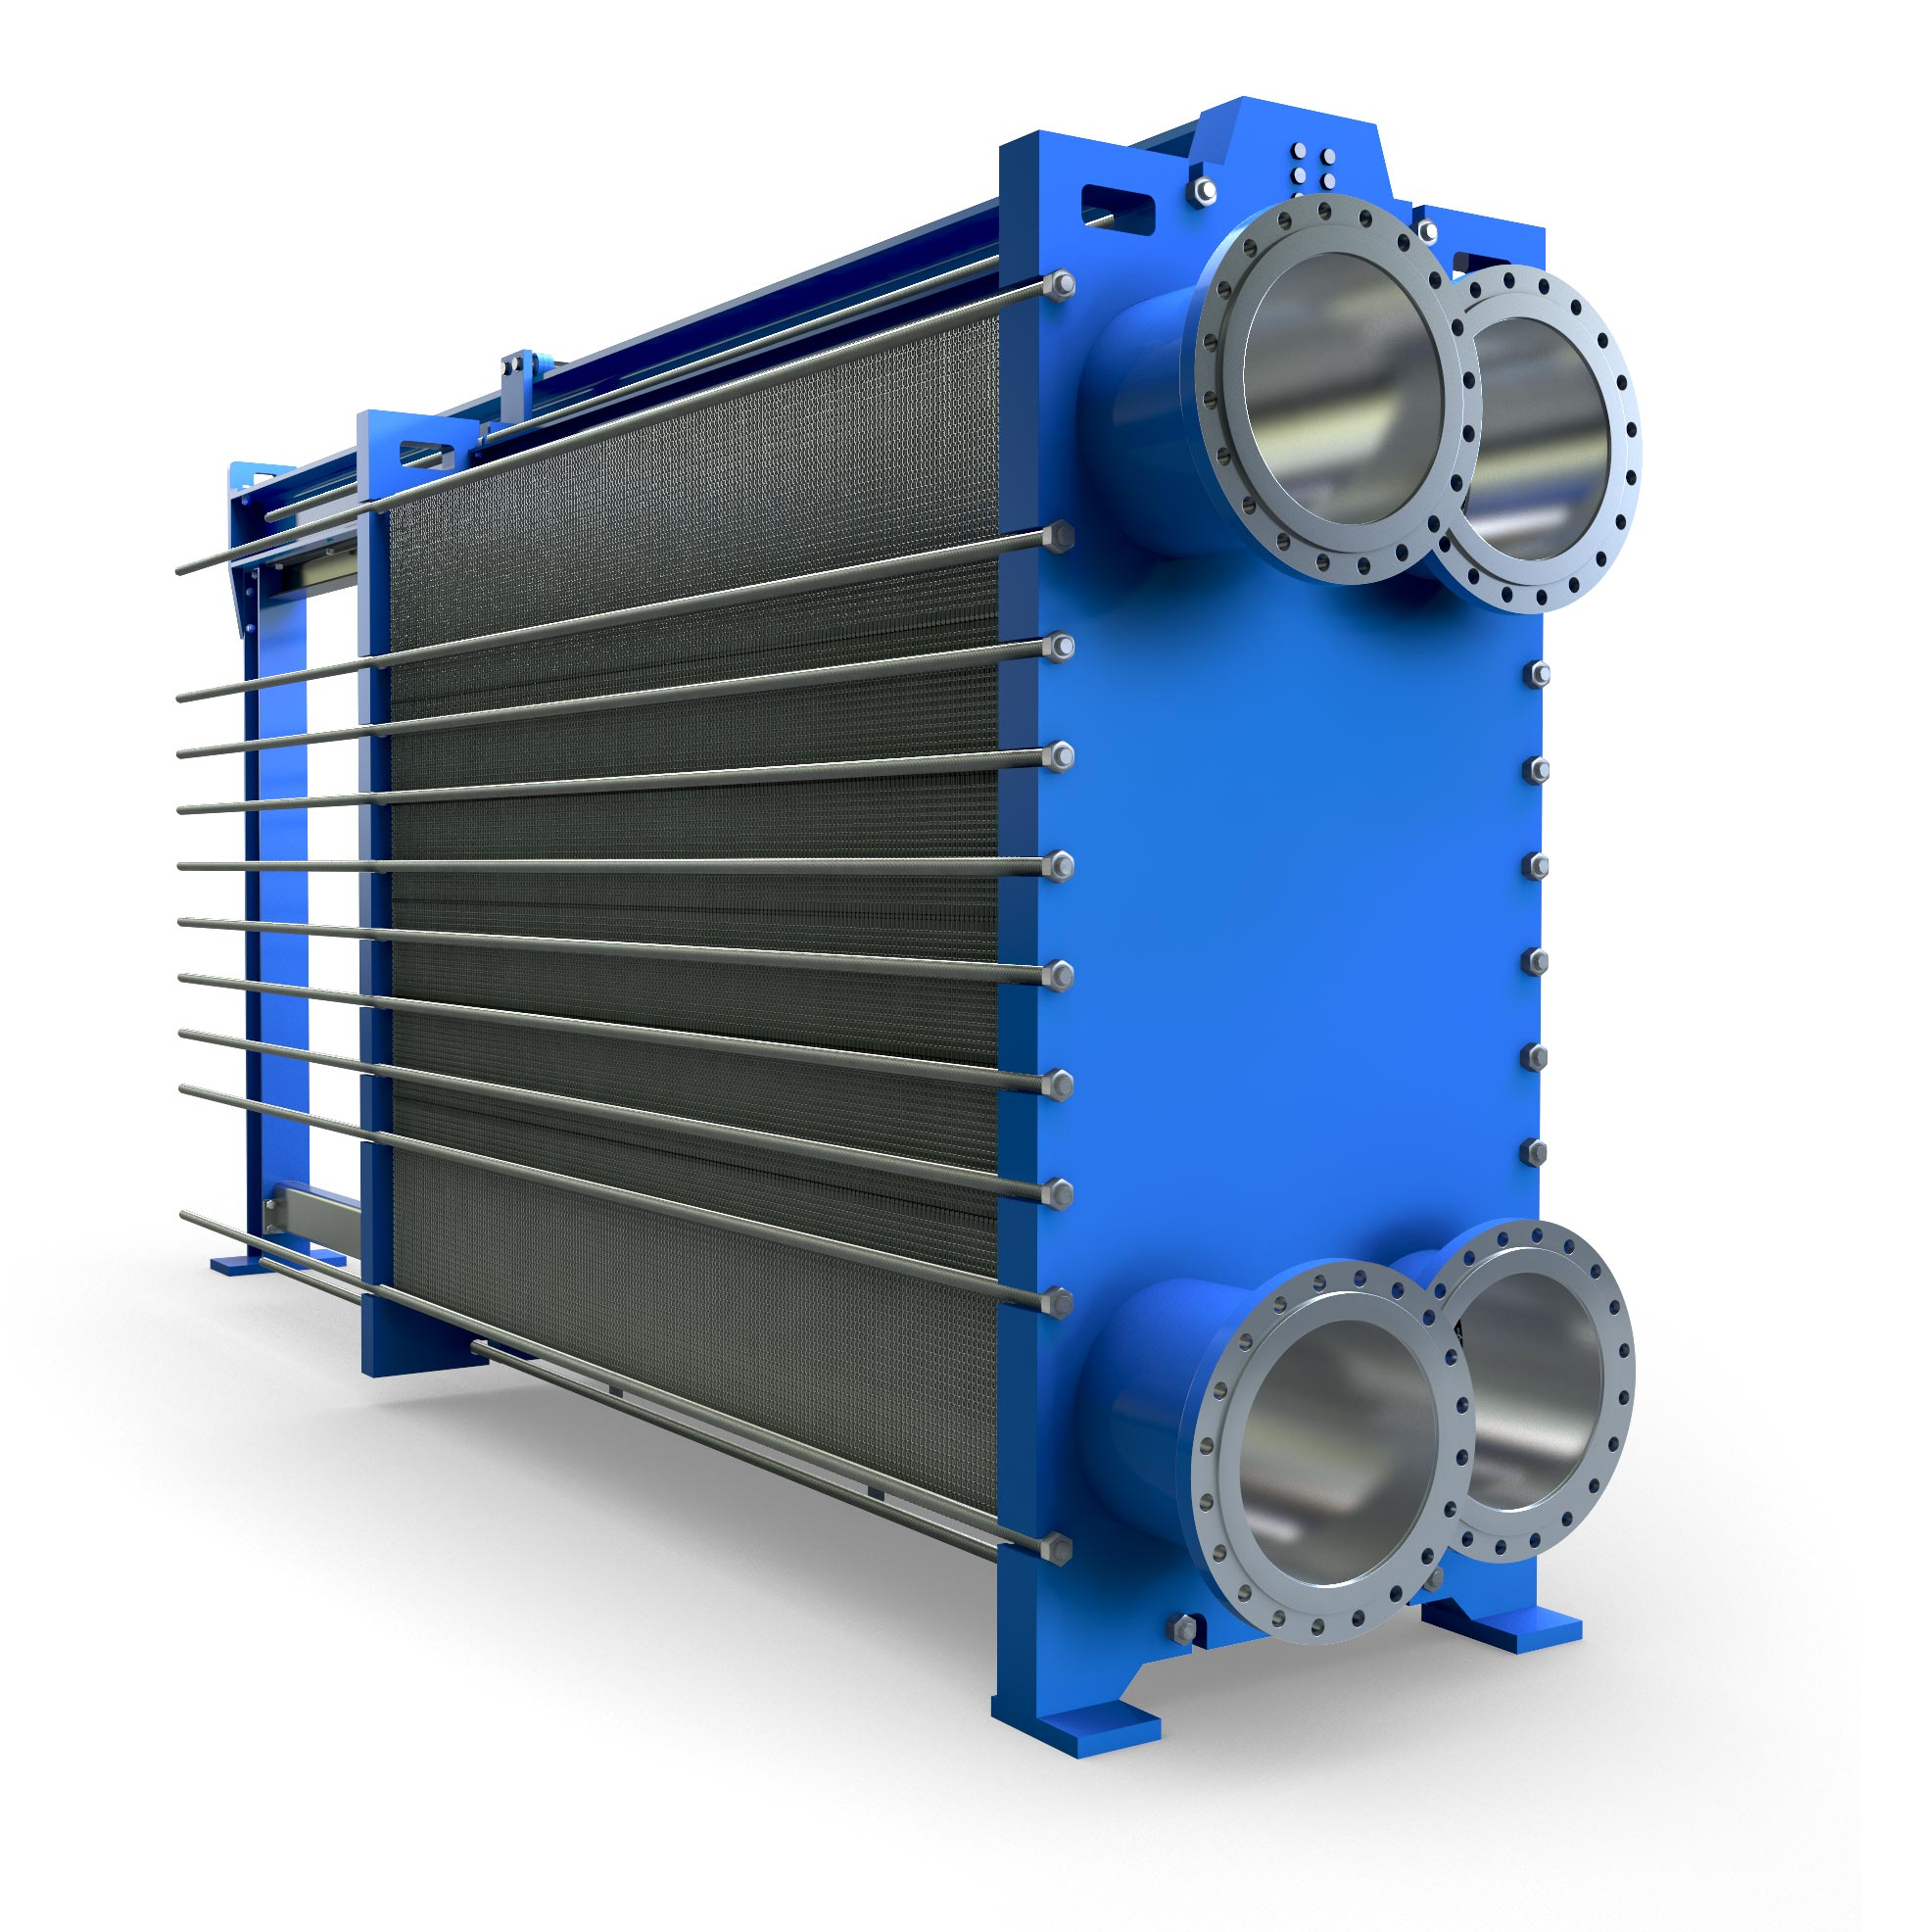 API Schmidt-Bretton M206 Bar & Plate Heat Exchanger